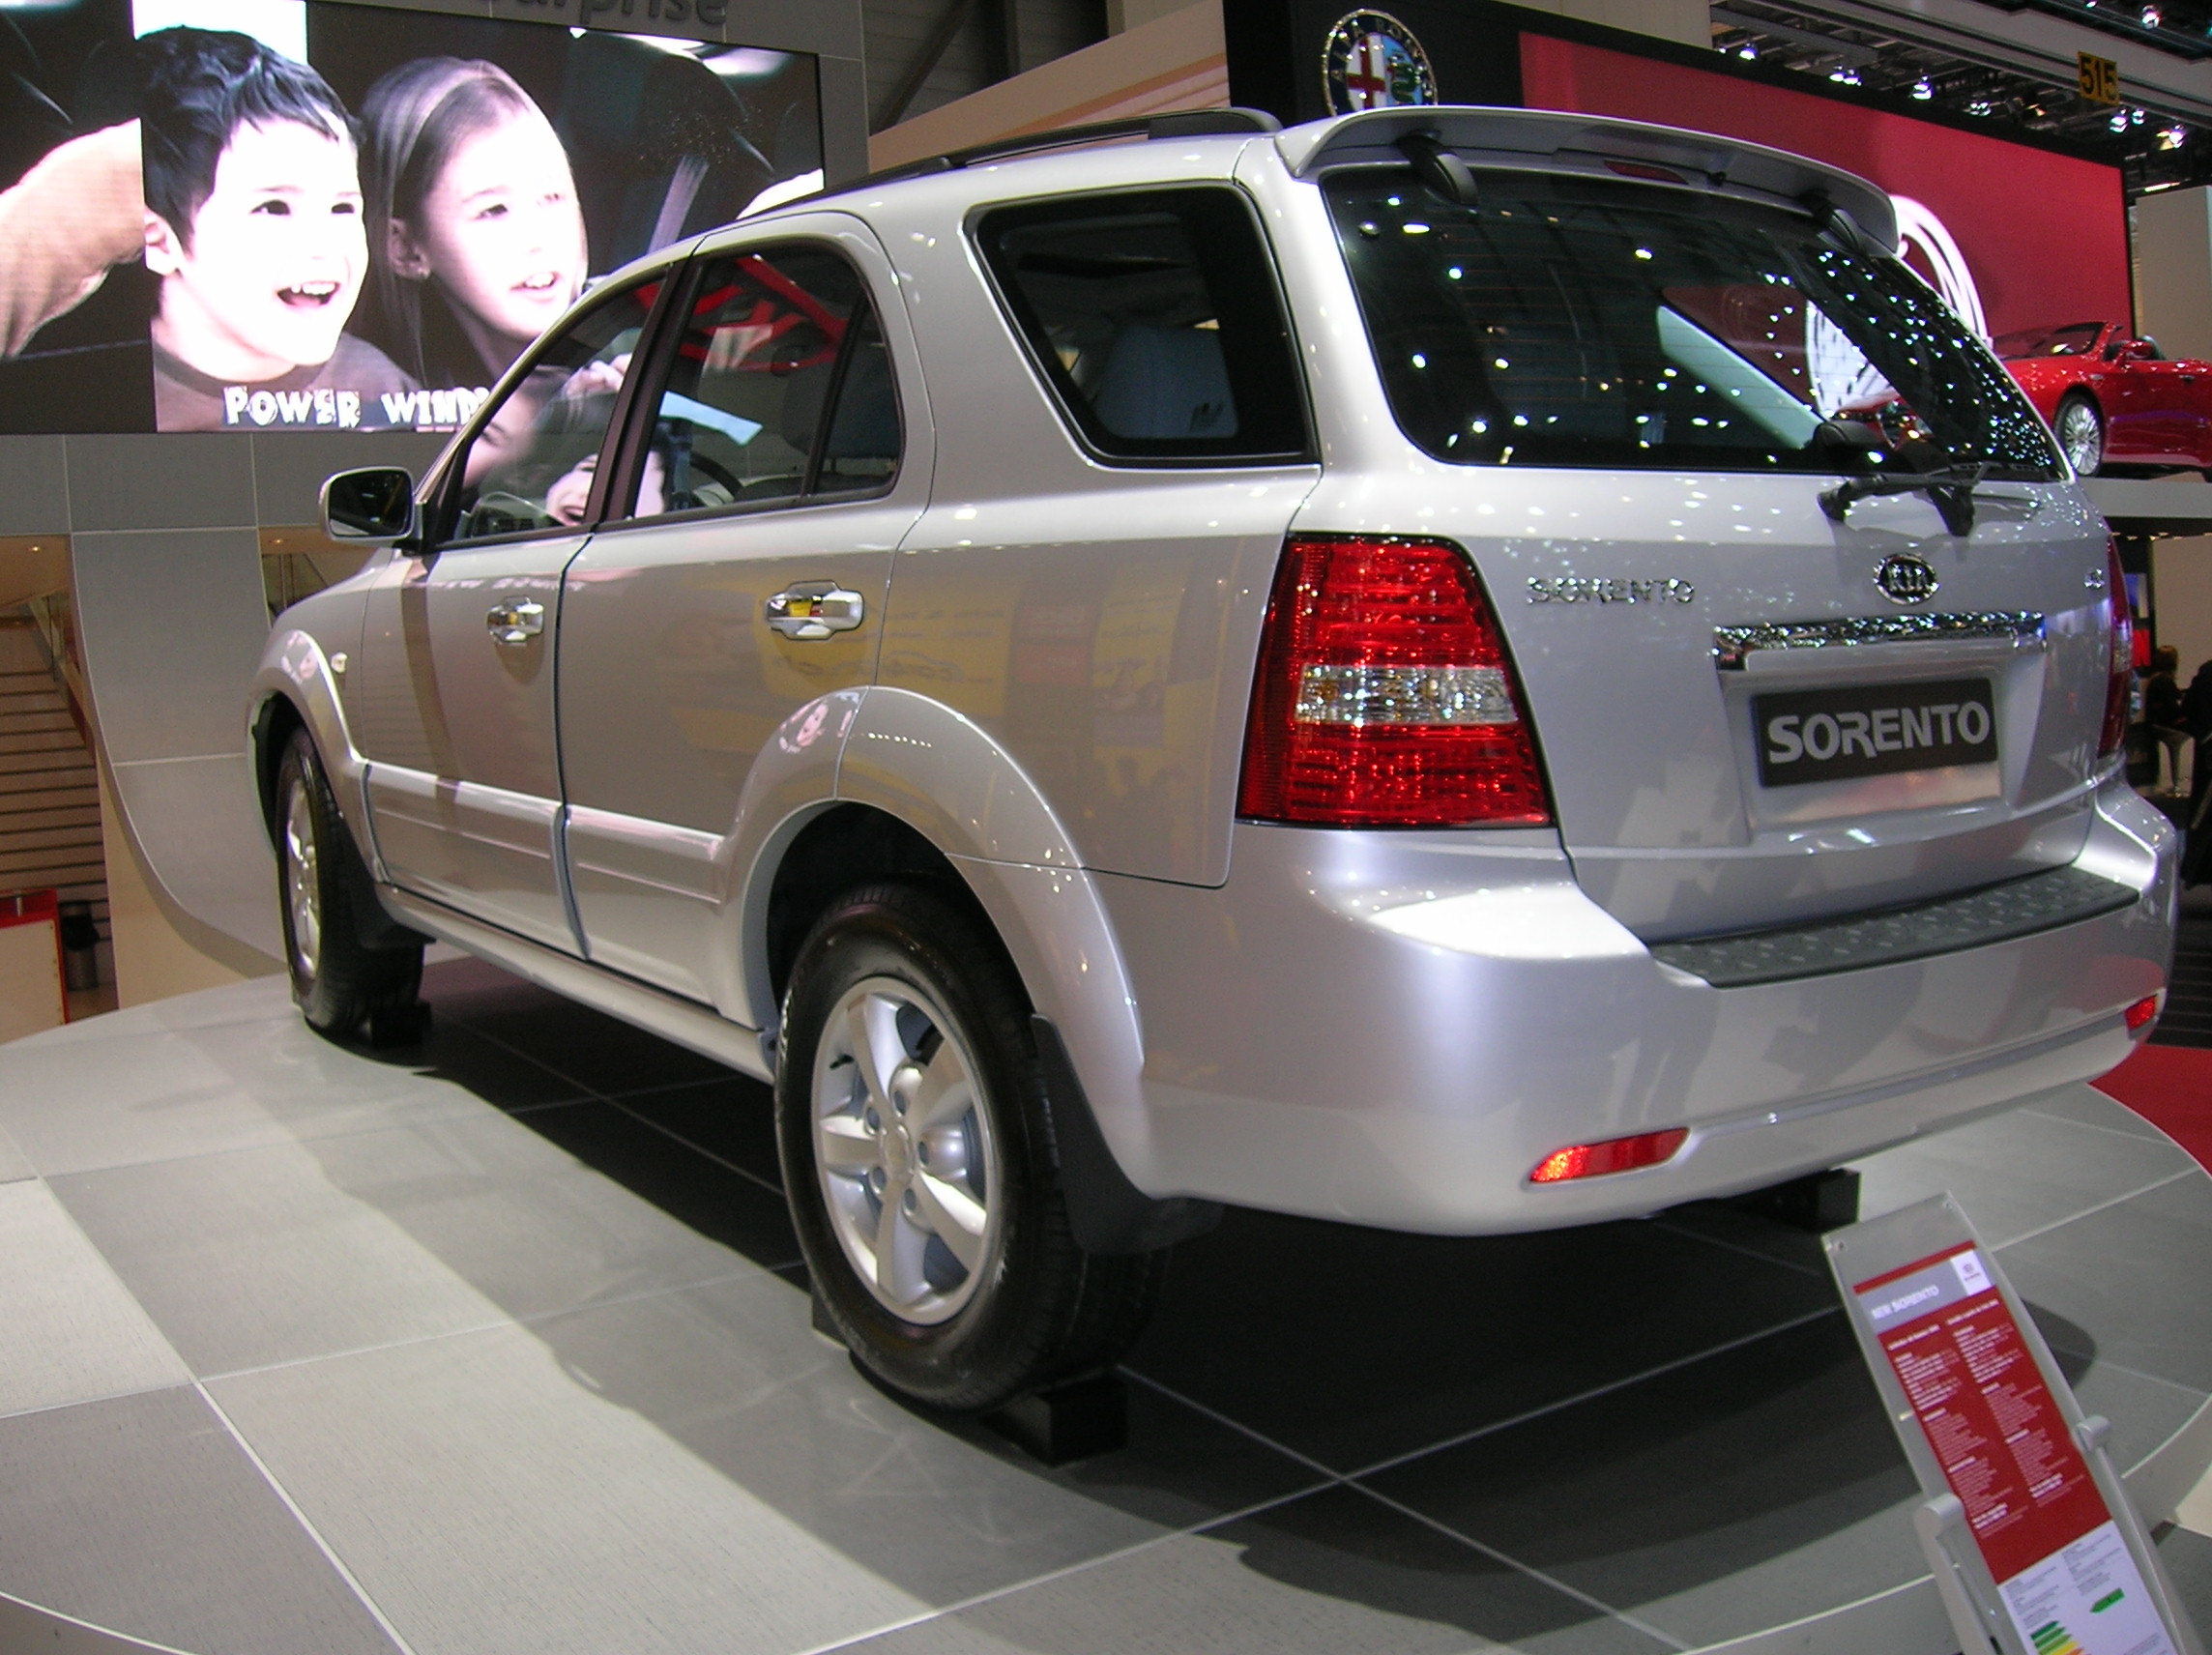 File 2006 sag kia sorento 03 jpg wikimedia commons for Kia motor finance physical payoff address